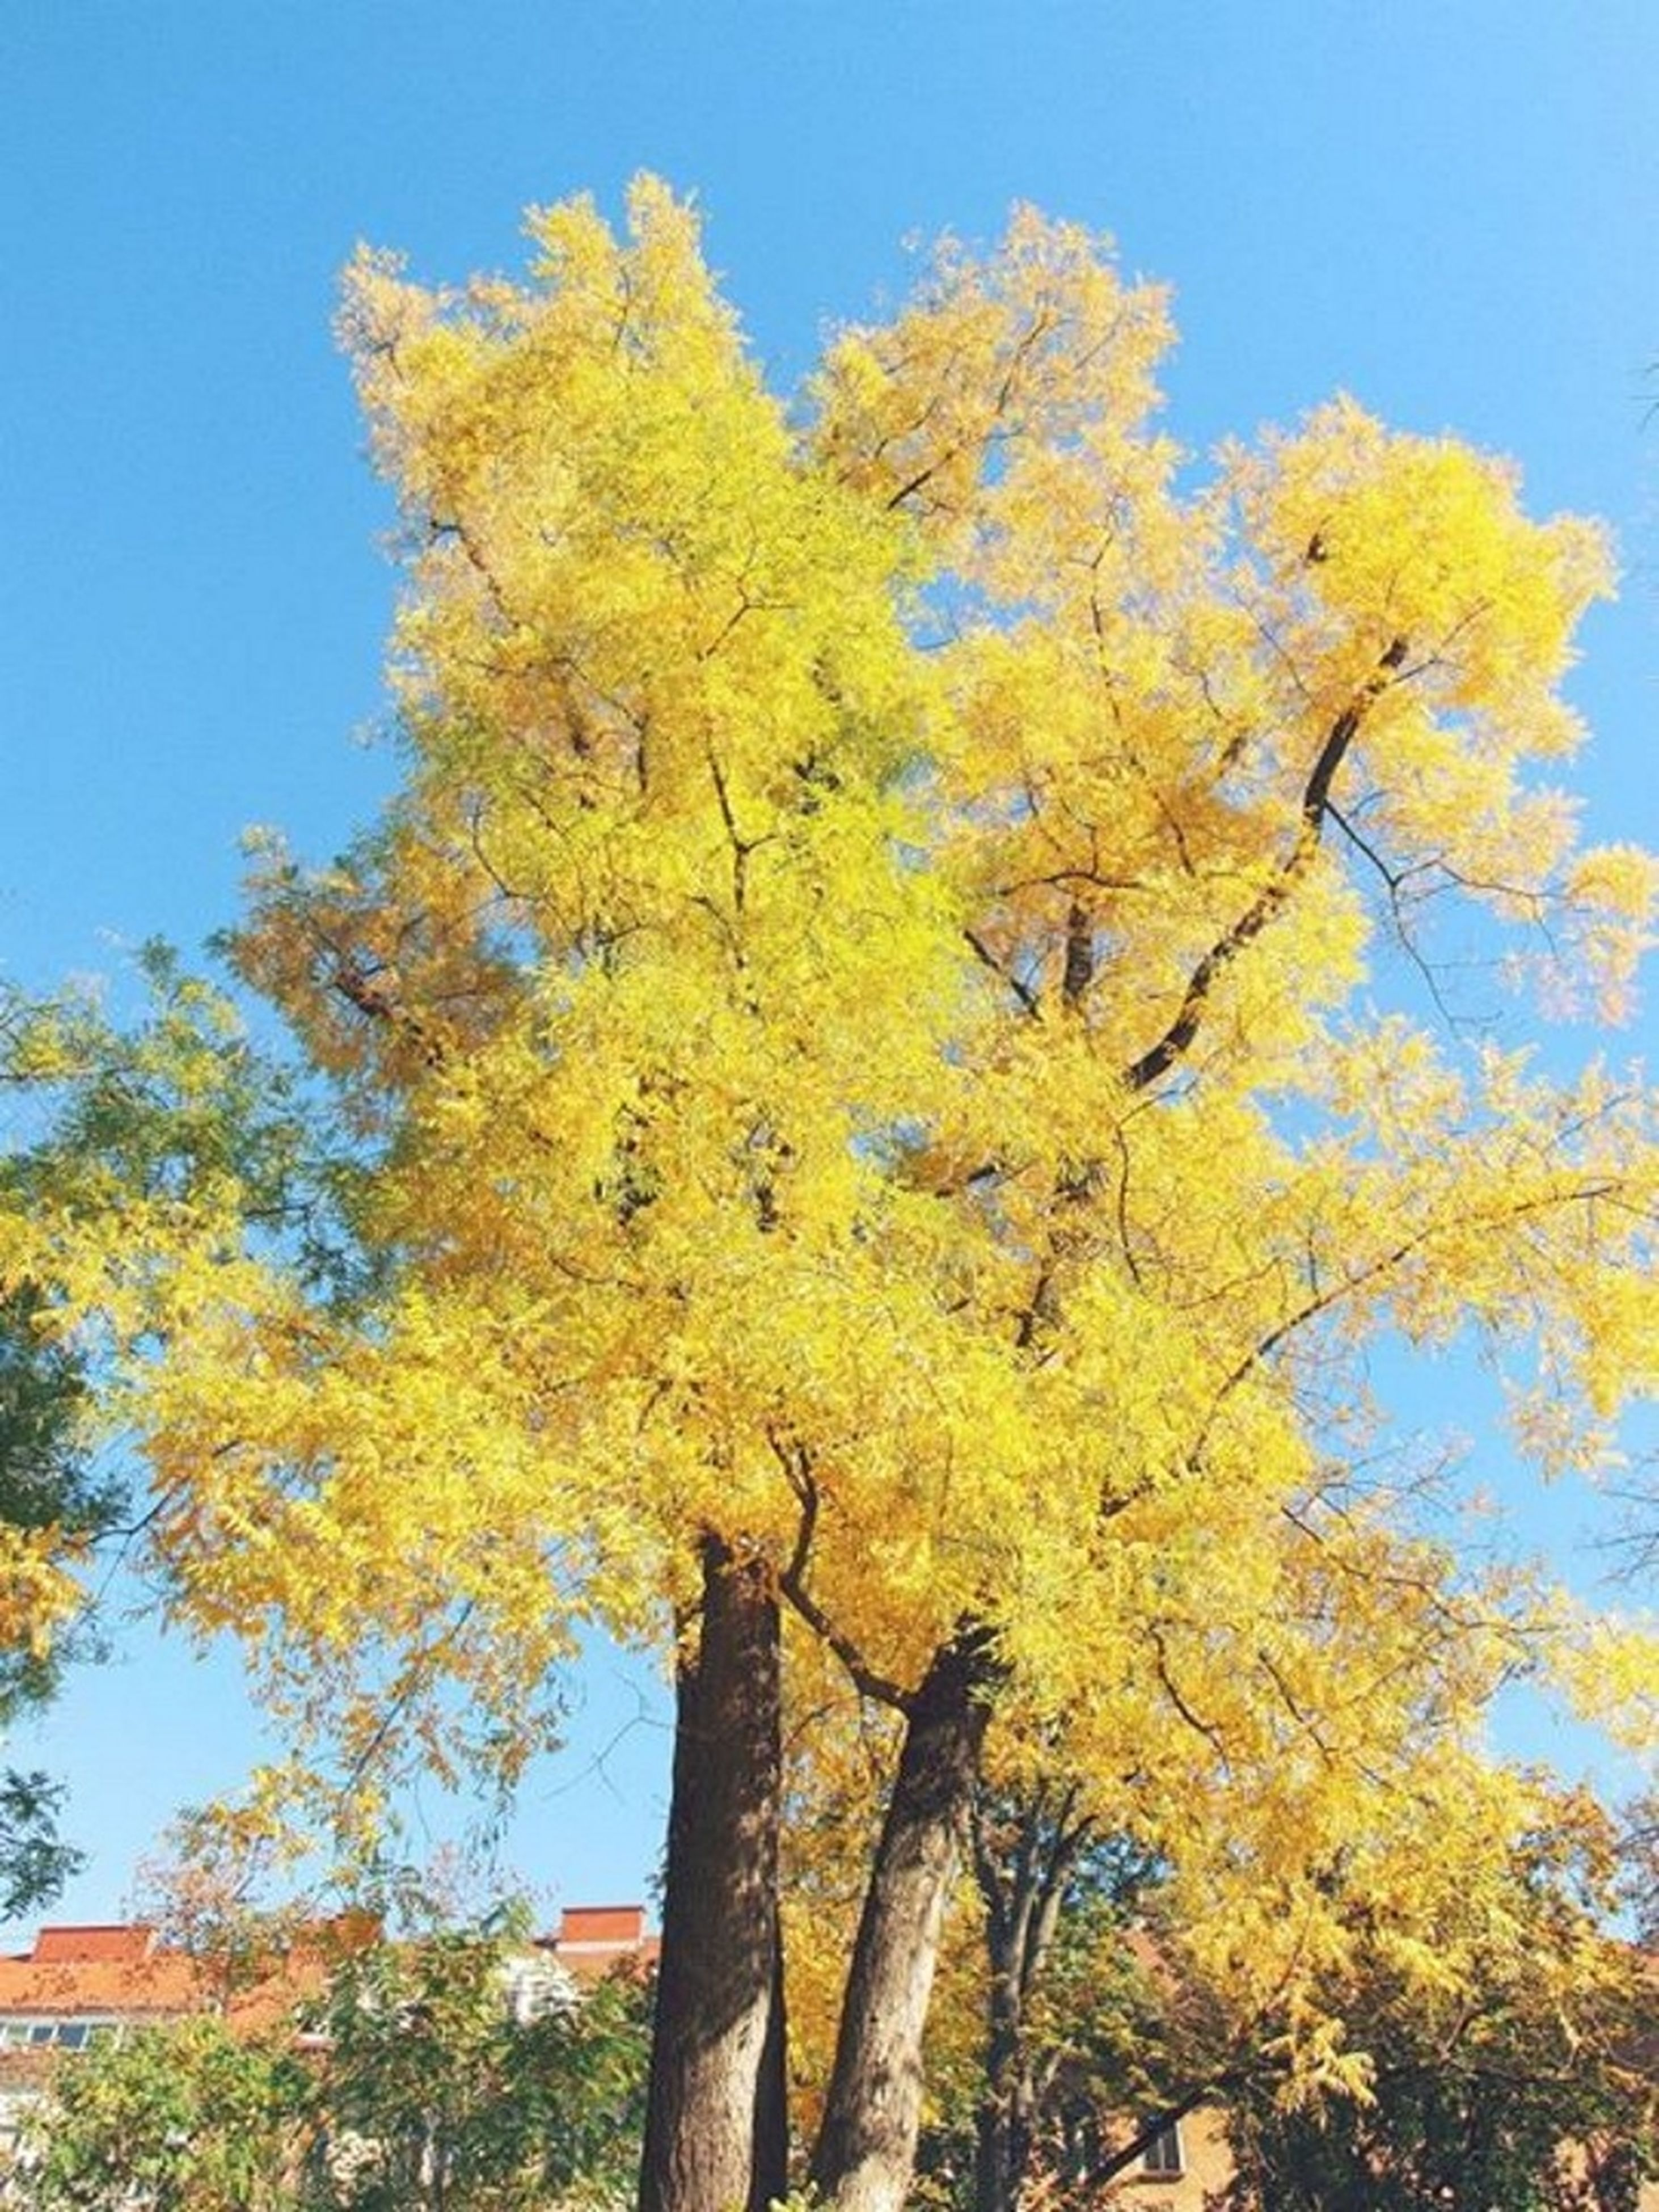 tree, yellow, clear sky, low angle view, growth, autumn, branch, change, blue, nature, season, beauty in nature, sunlight, tranquility, flower, day, sky, outdoors, no people, park - man made space